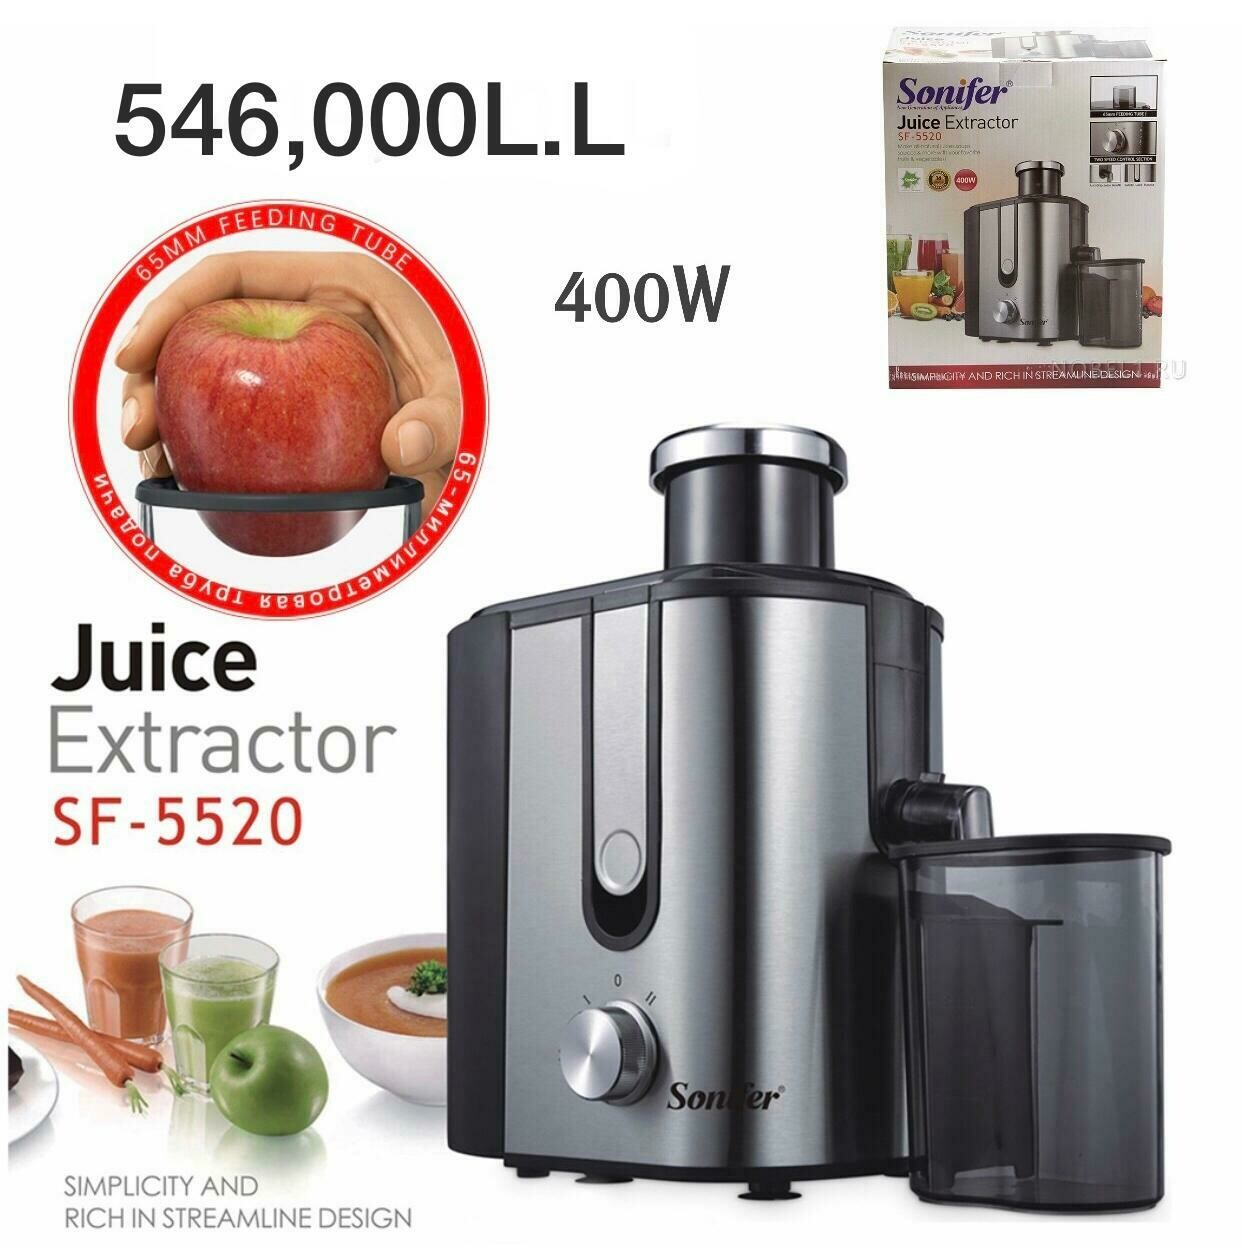 """SONIFER"" Juice Extractor SF-5520"